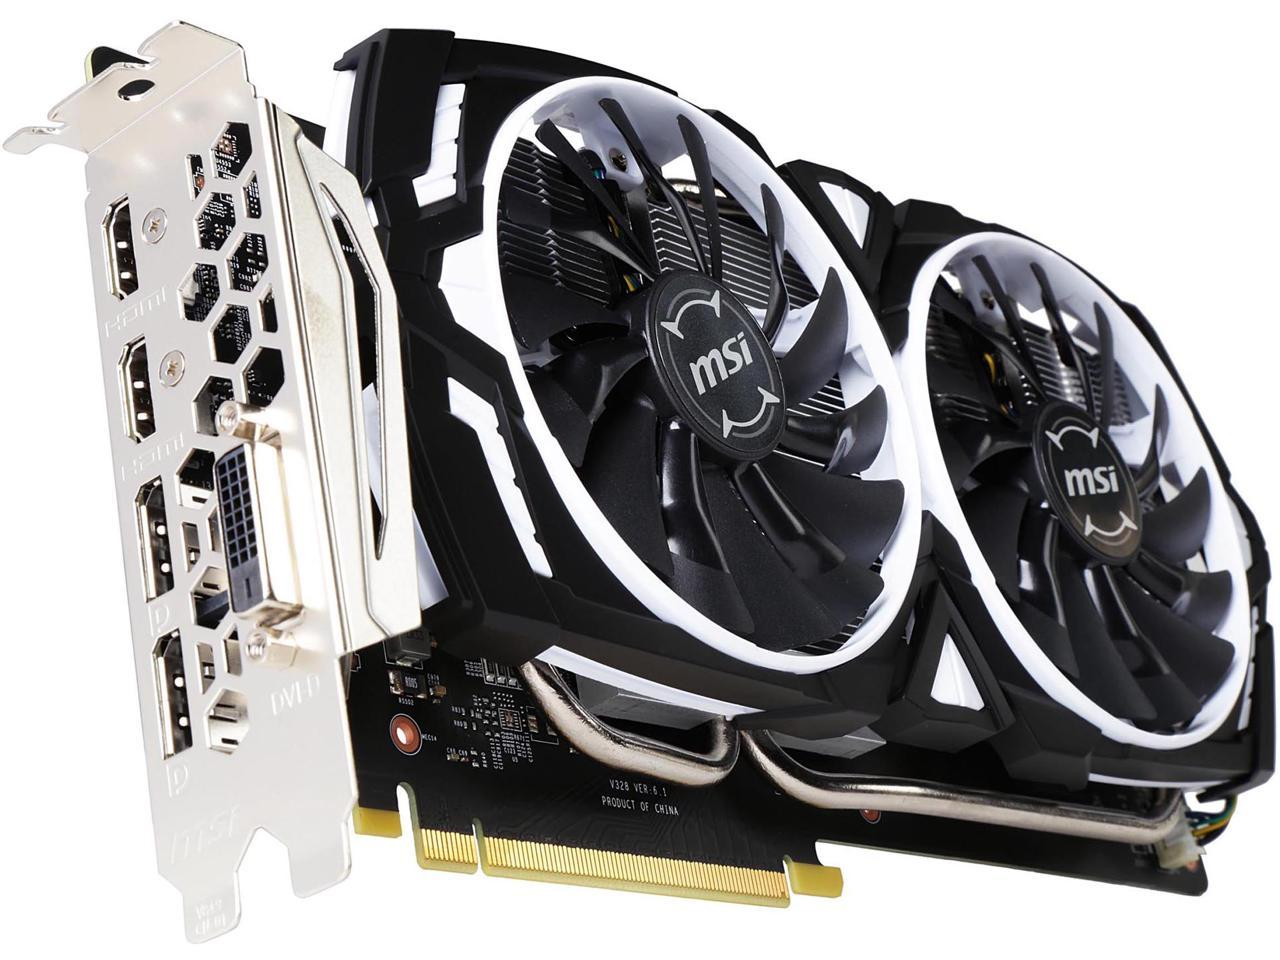 MSI GeForce GTX 1060 ARMOR 3G OCV1 3GB 192-Bit Graphics Card + NVIDIA GIFT - For Honor or Ghost Recon: Wildlands